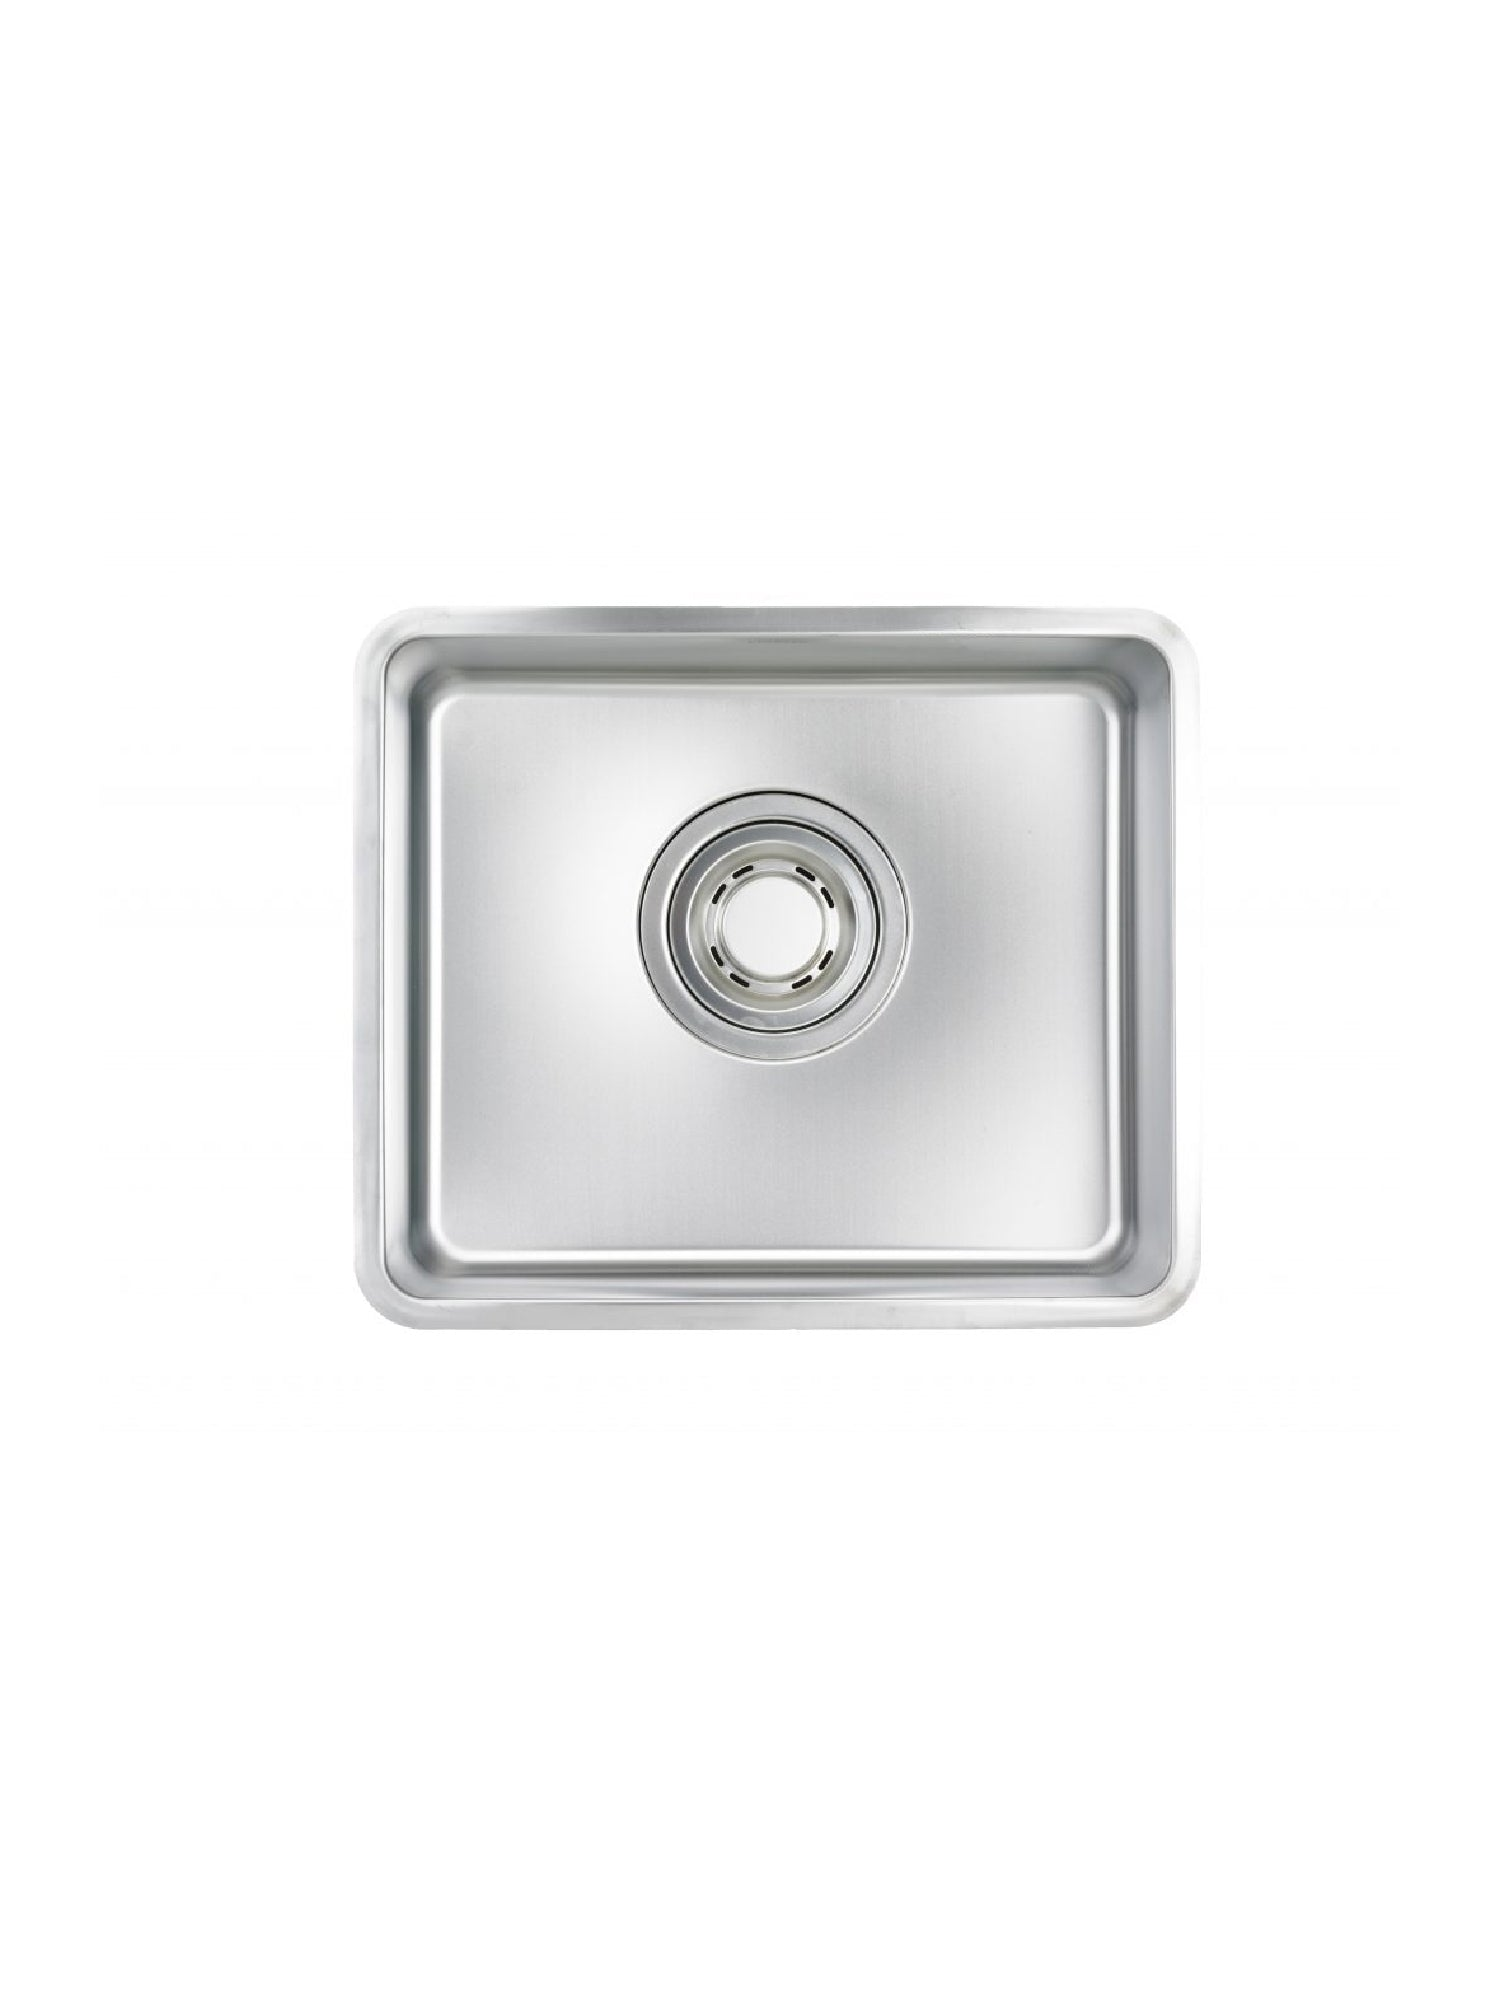 Lizens Single Bowl Kitchen Sink #LQ540